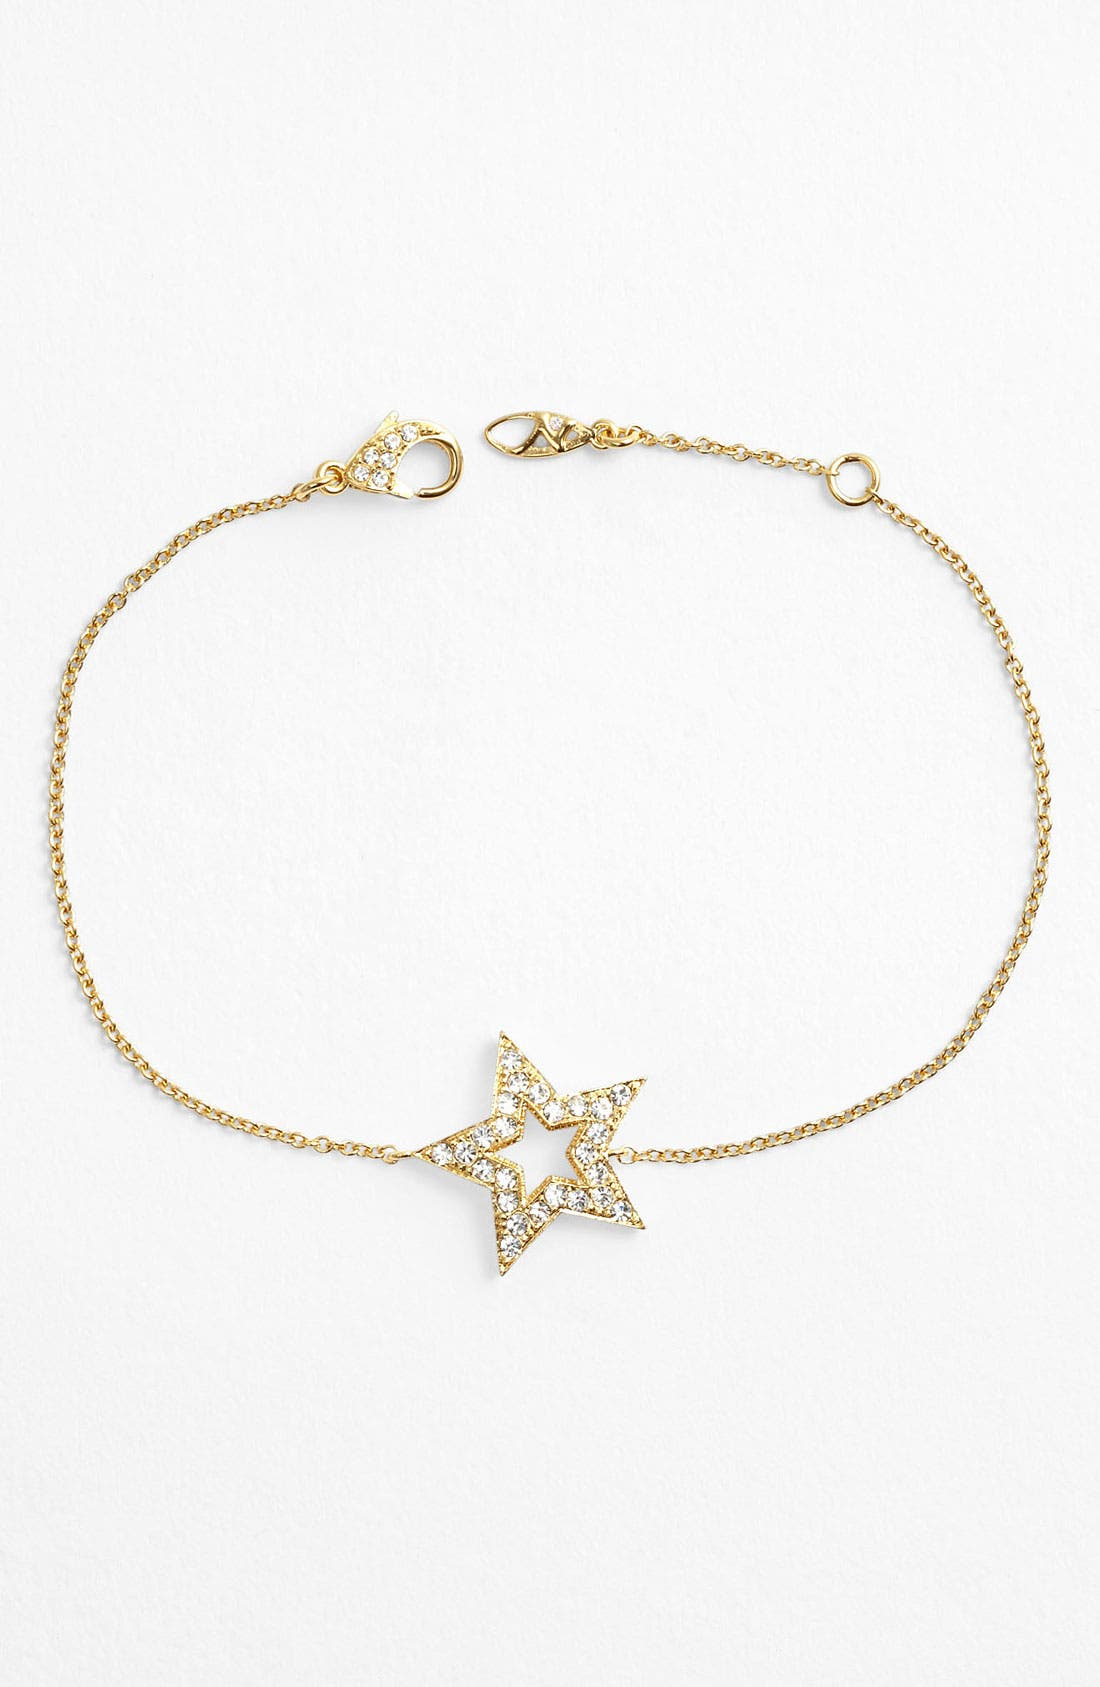 Alternate Image 1 Selected - Nadri Star Station Bracelet (Nordstrom Exclusive)